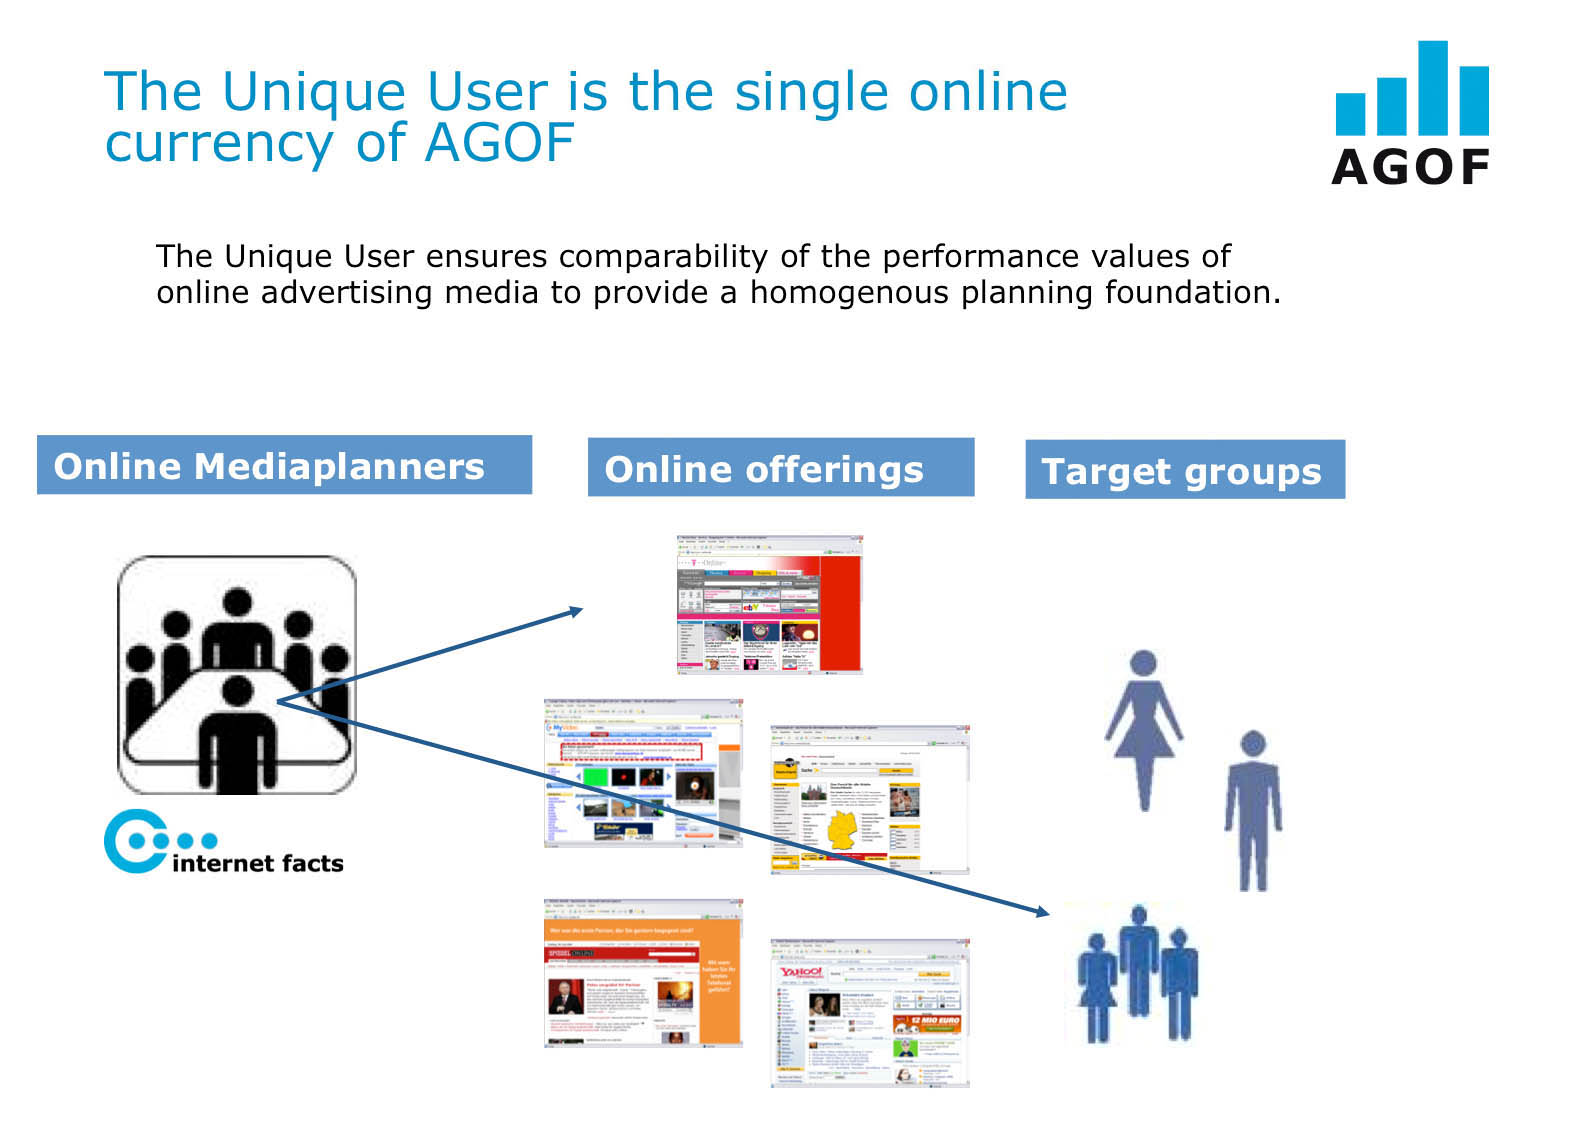 The Unique User is the single online currency of AGOF